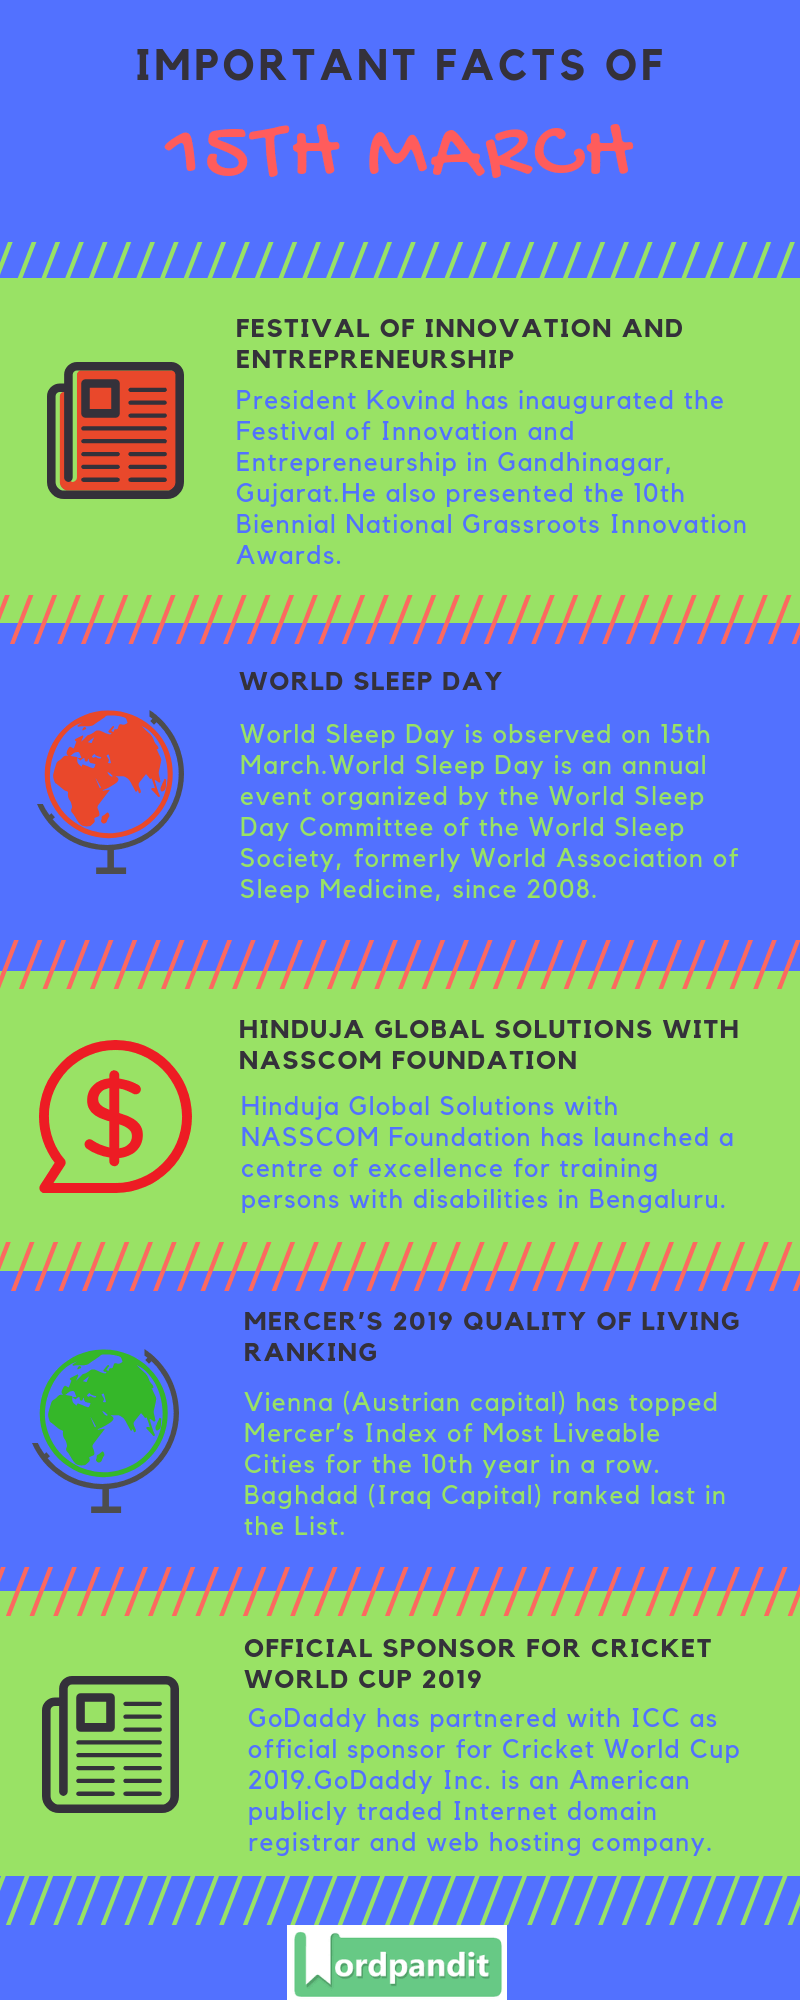 Daily Current Affairs 15 March 2019 Current Affairs Quiz 15 March 2019 Current Affairs Infographic